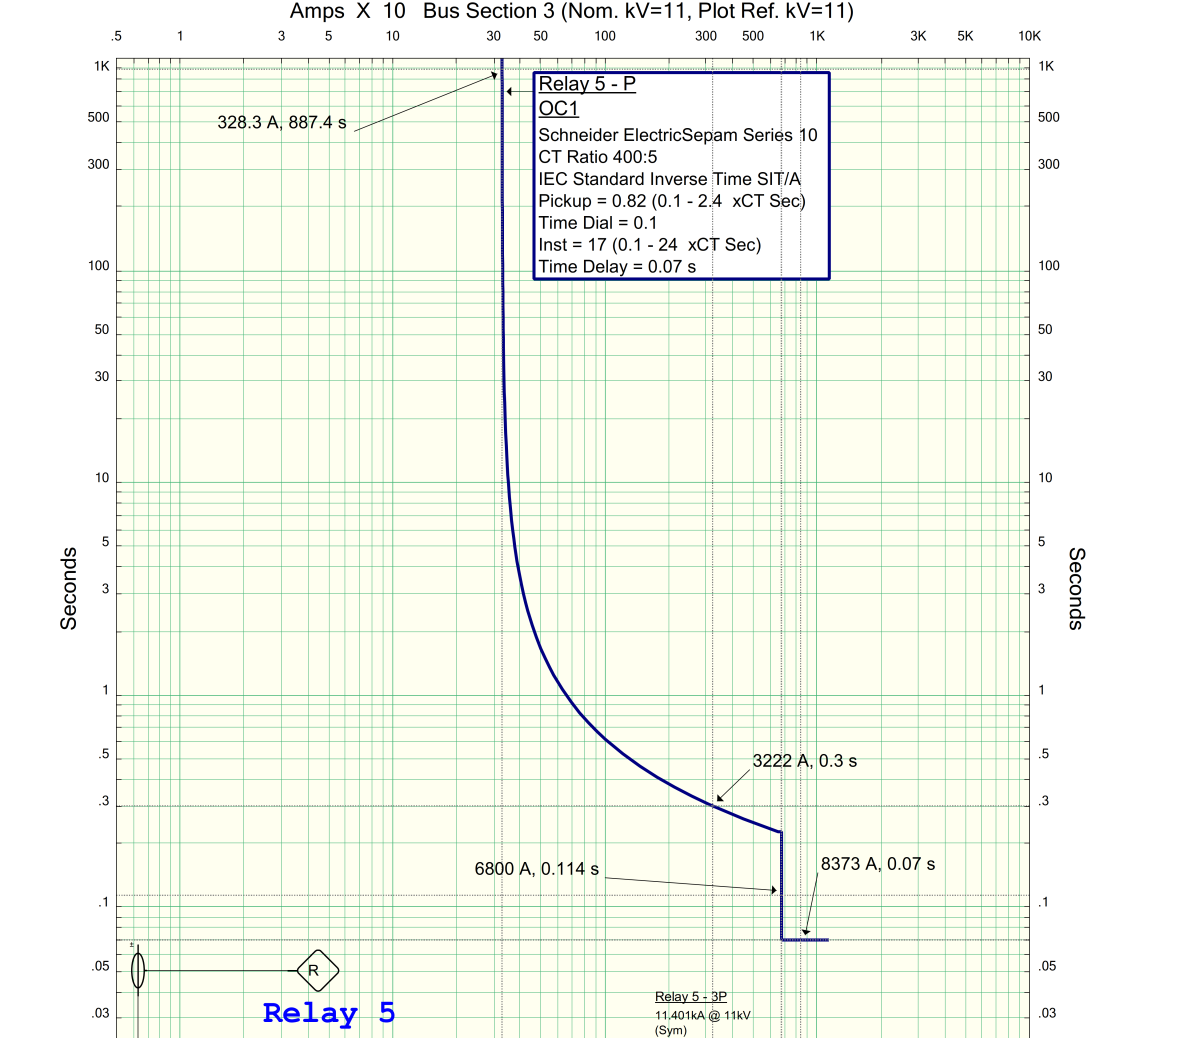 Typical standard inverse definite-time curve for the example relay settings demonstrated. The Inverse definite part and the instantaneous parts of the curve are integrated.